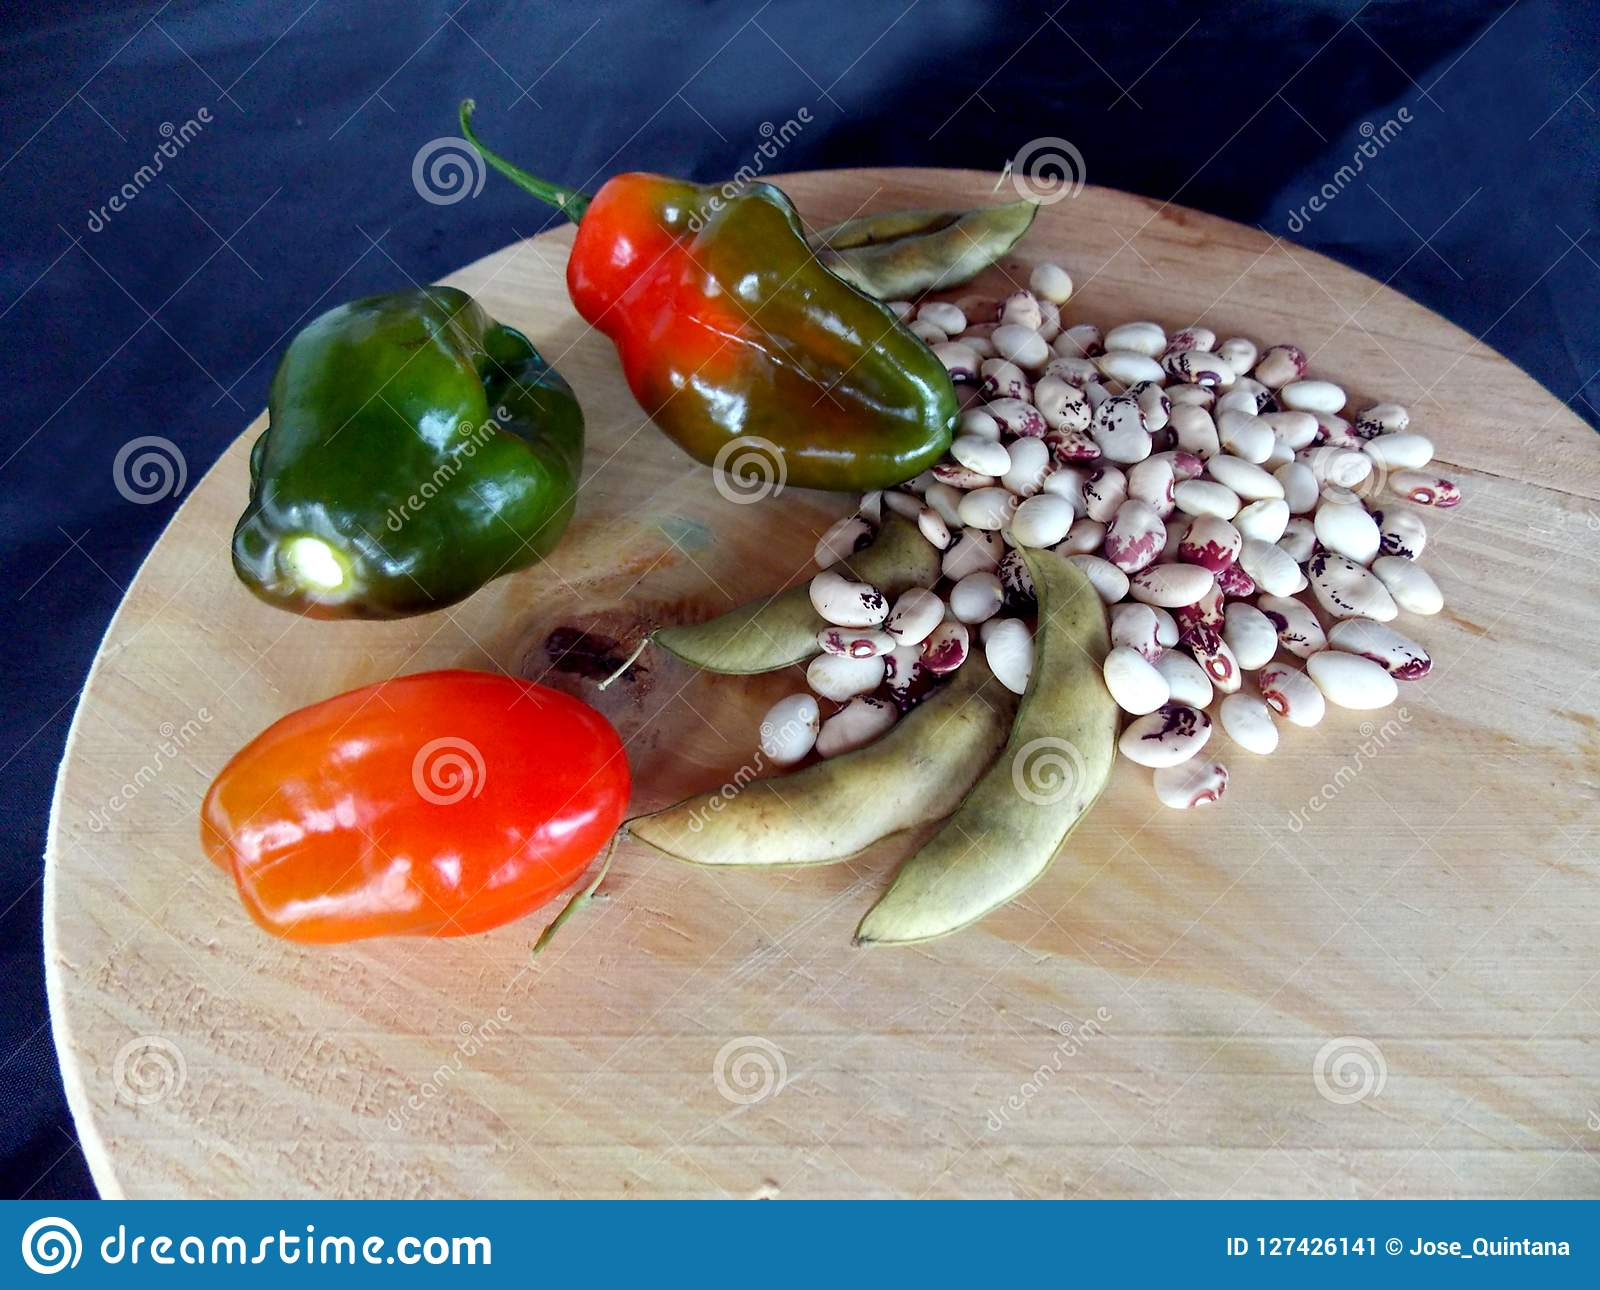 Chili Peppers, Beans And Pods Over A Wooden Cutting Board